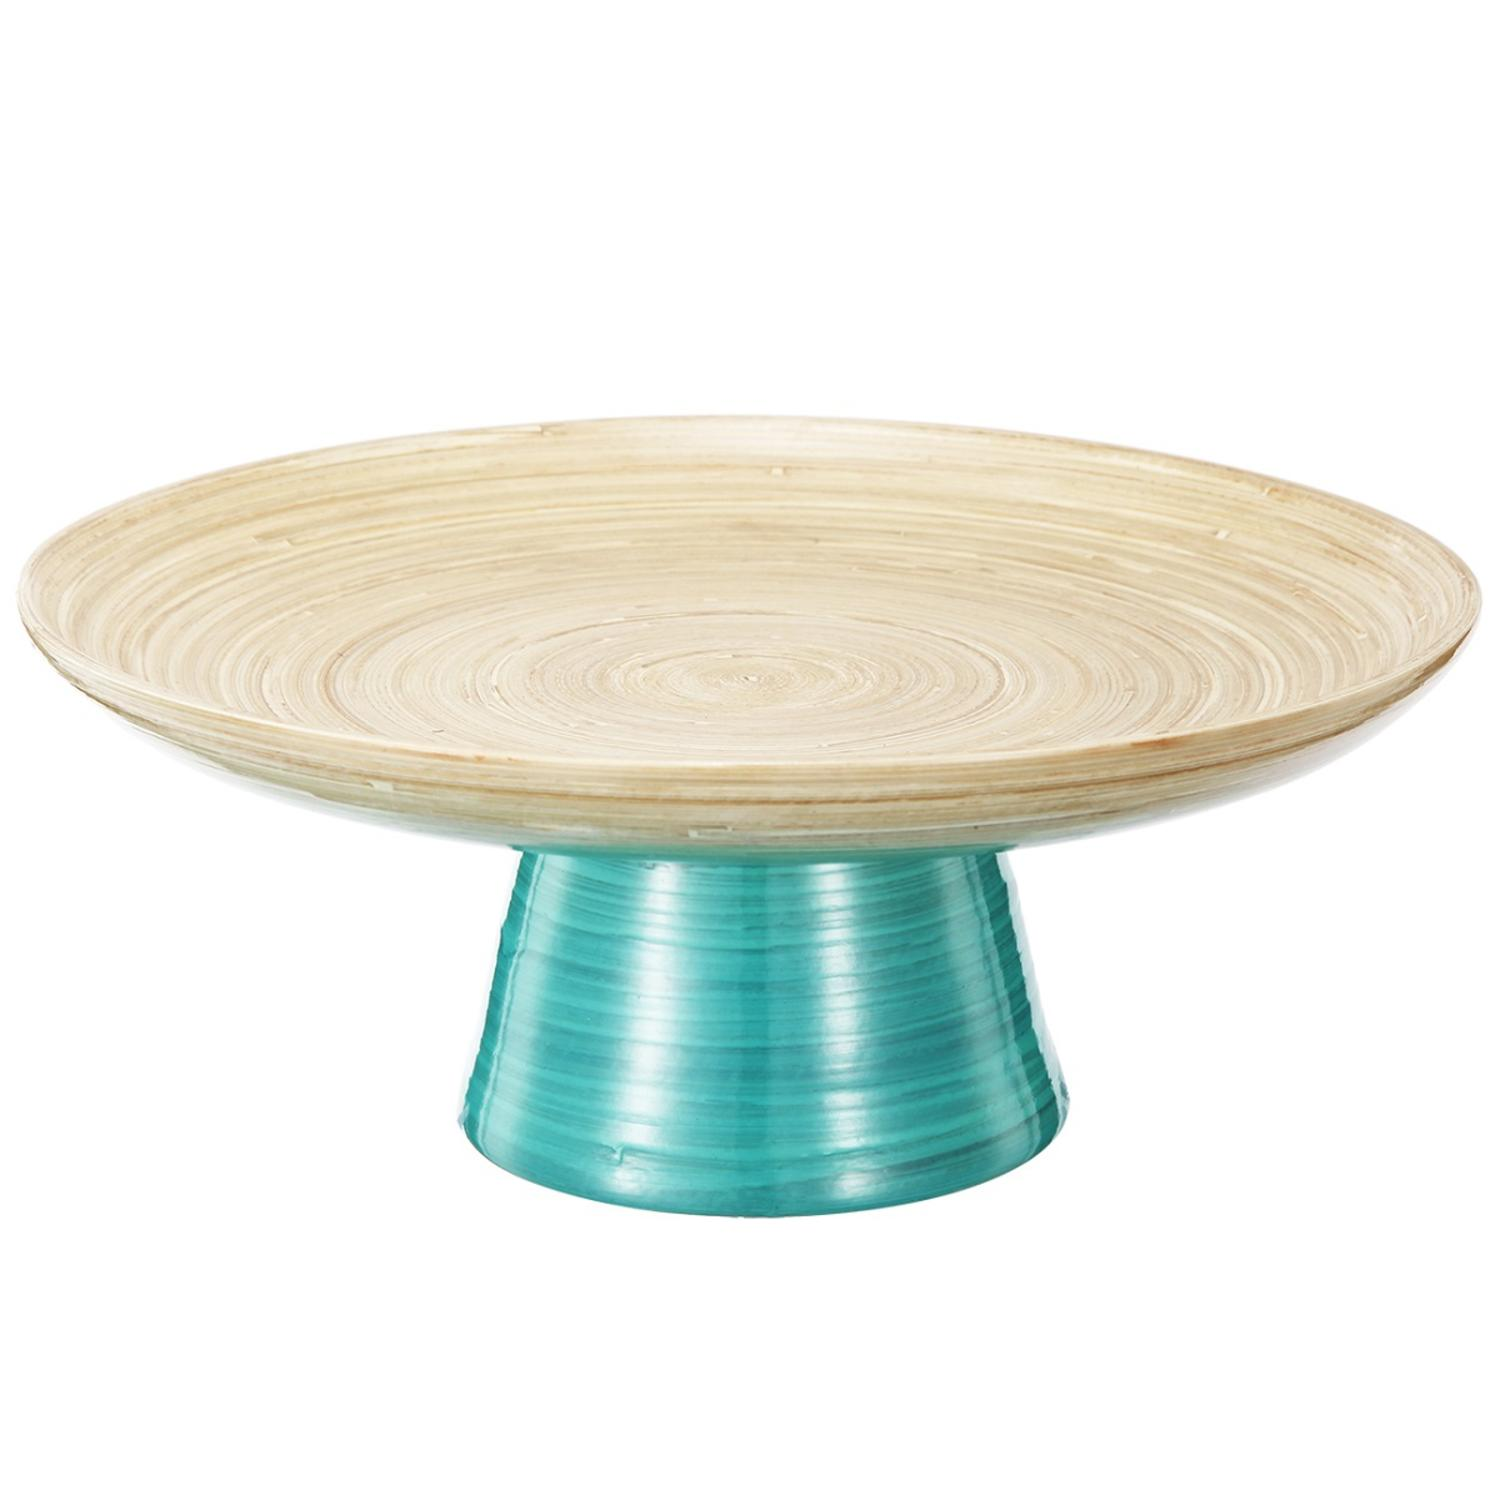 """Image of 12"""" Teal and Tan Decorative Ombre Dynasty Bamboo Presentation Pedestal Tray"""